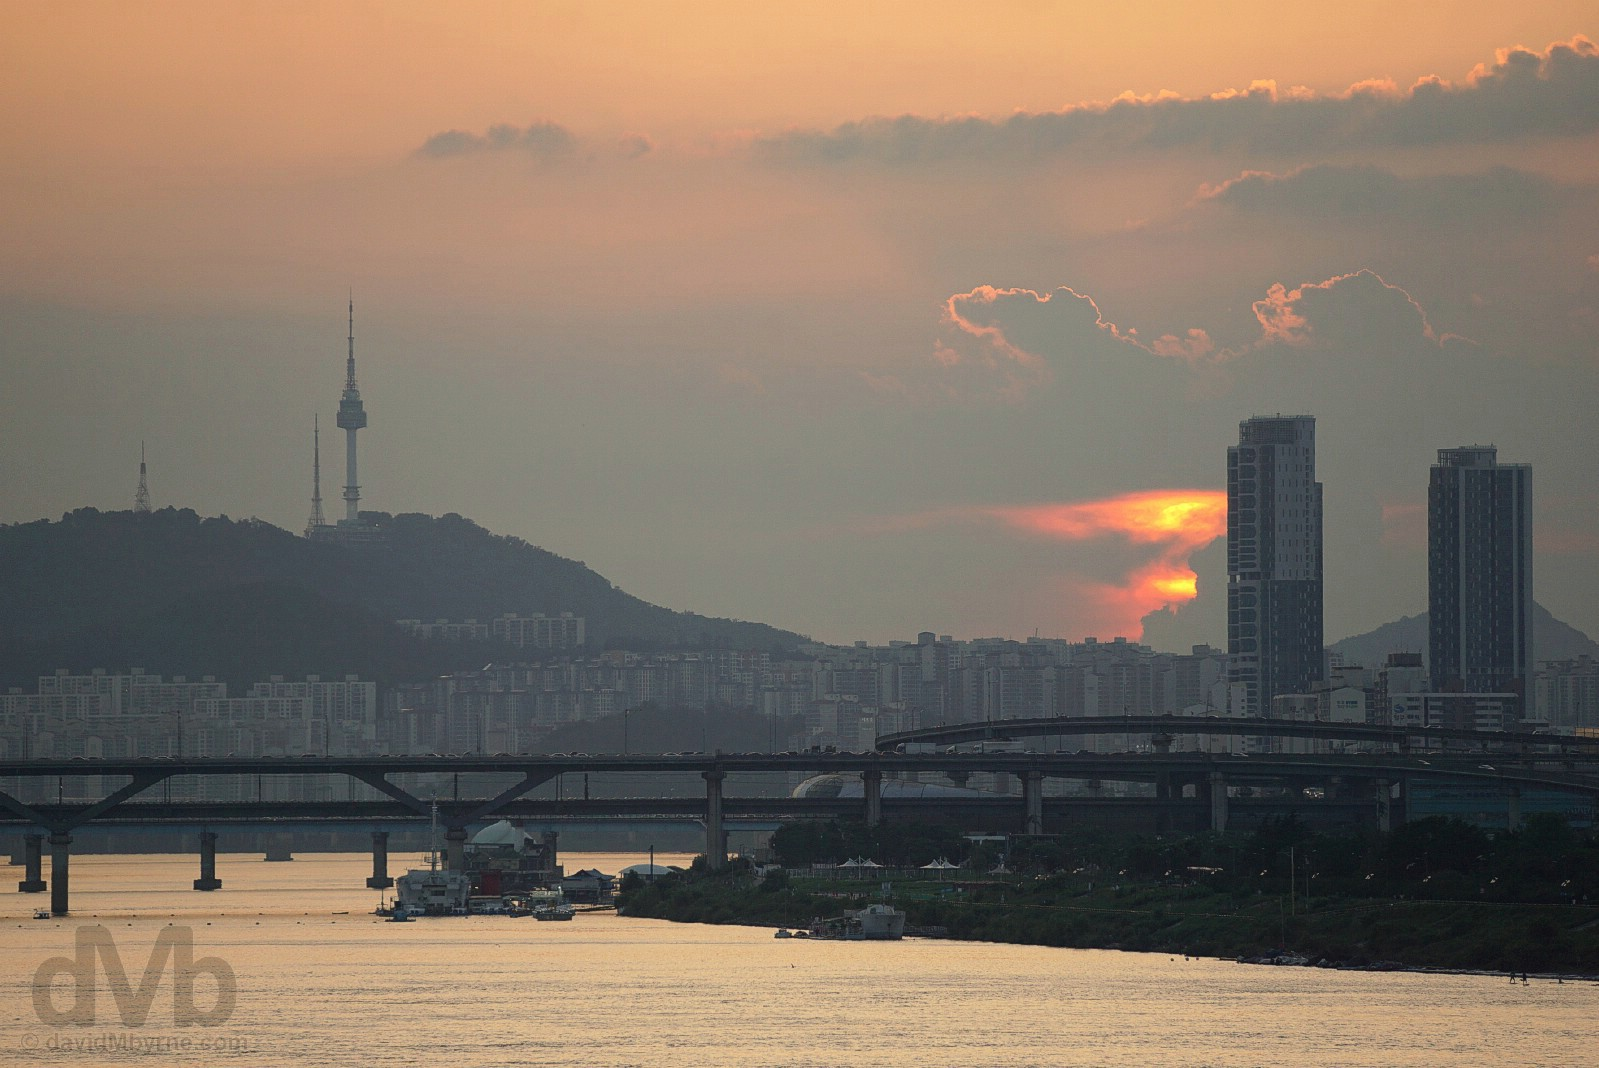 A dying sunset as seen from the Jamsil Bridge over the Han River in Seoul, South Korea. July 25, 2017.